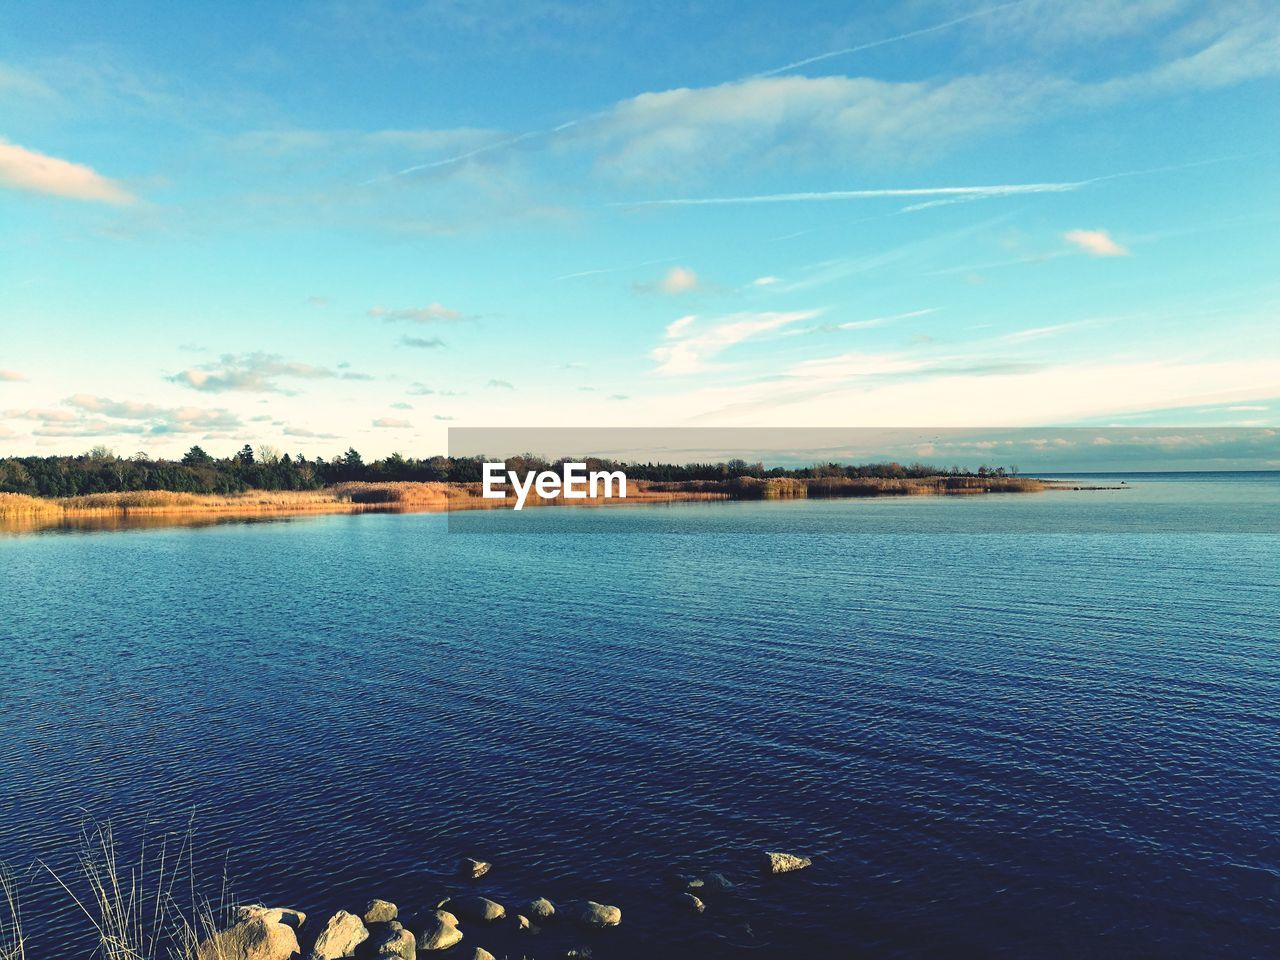 water, sky, scenics, beauty in nature, tranquility, nature, no people, outdoors, tranquil scene, lake, day, cloud - sky, animal themes